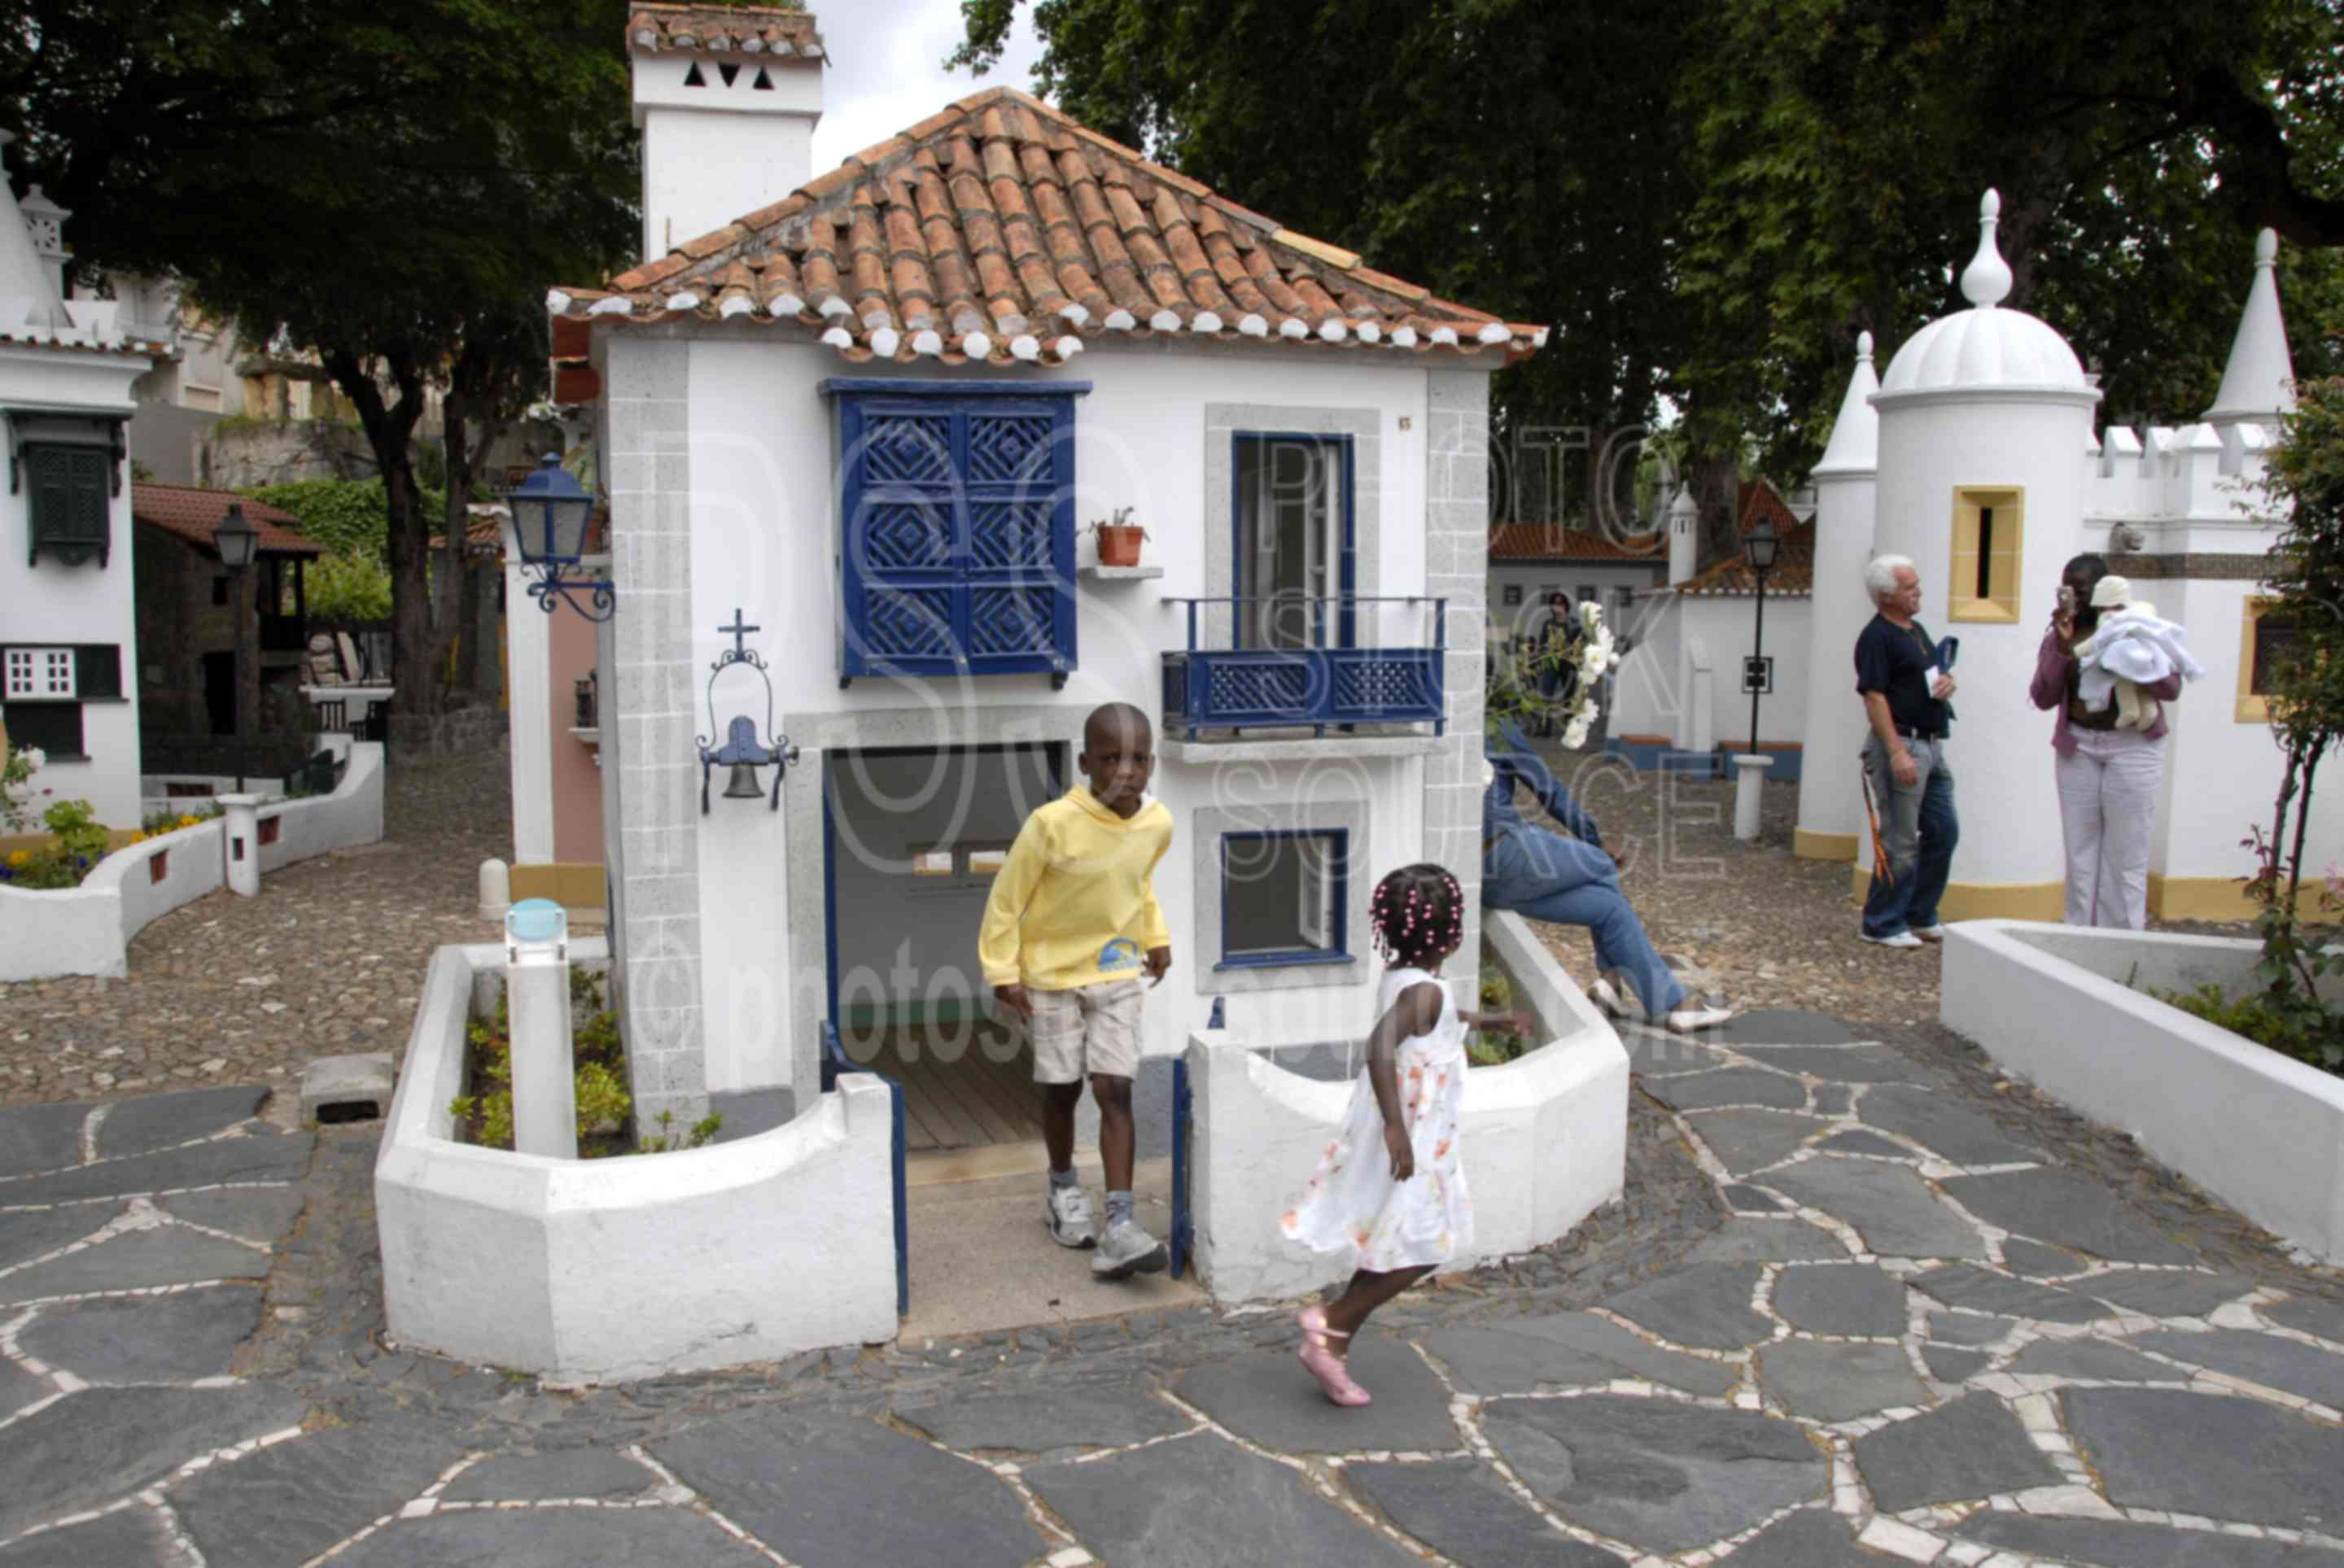 Children Playing,children,portugal dos pequenitos,houses,child,playing,play,minature houses